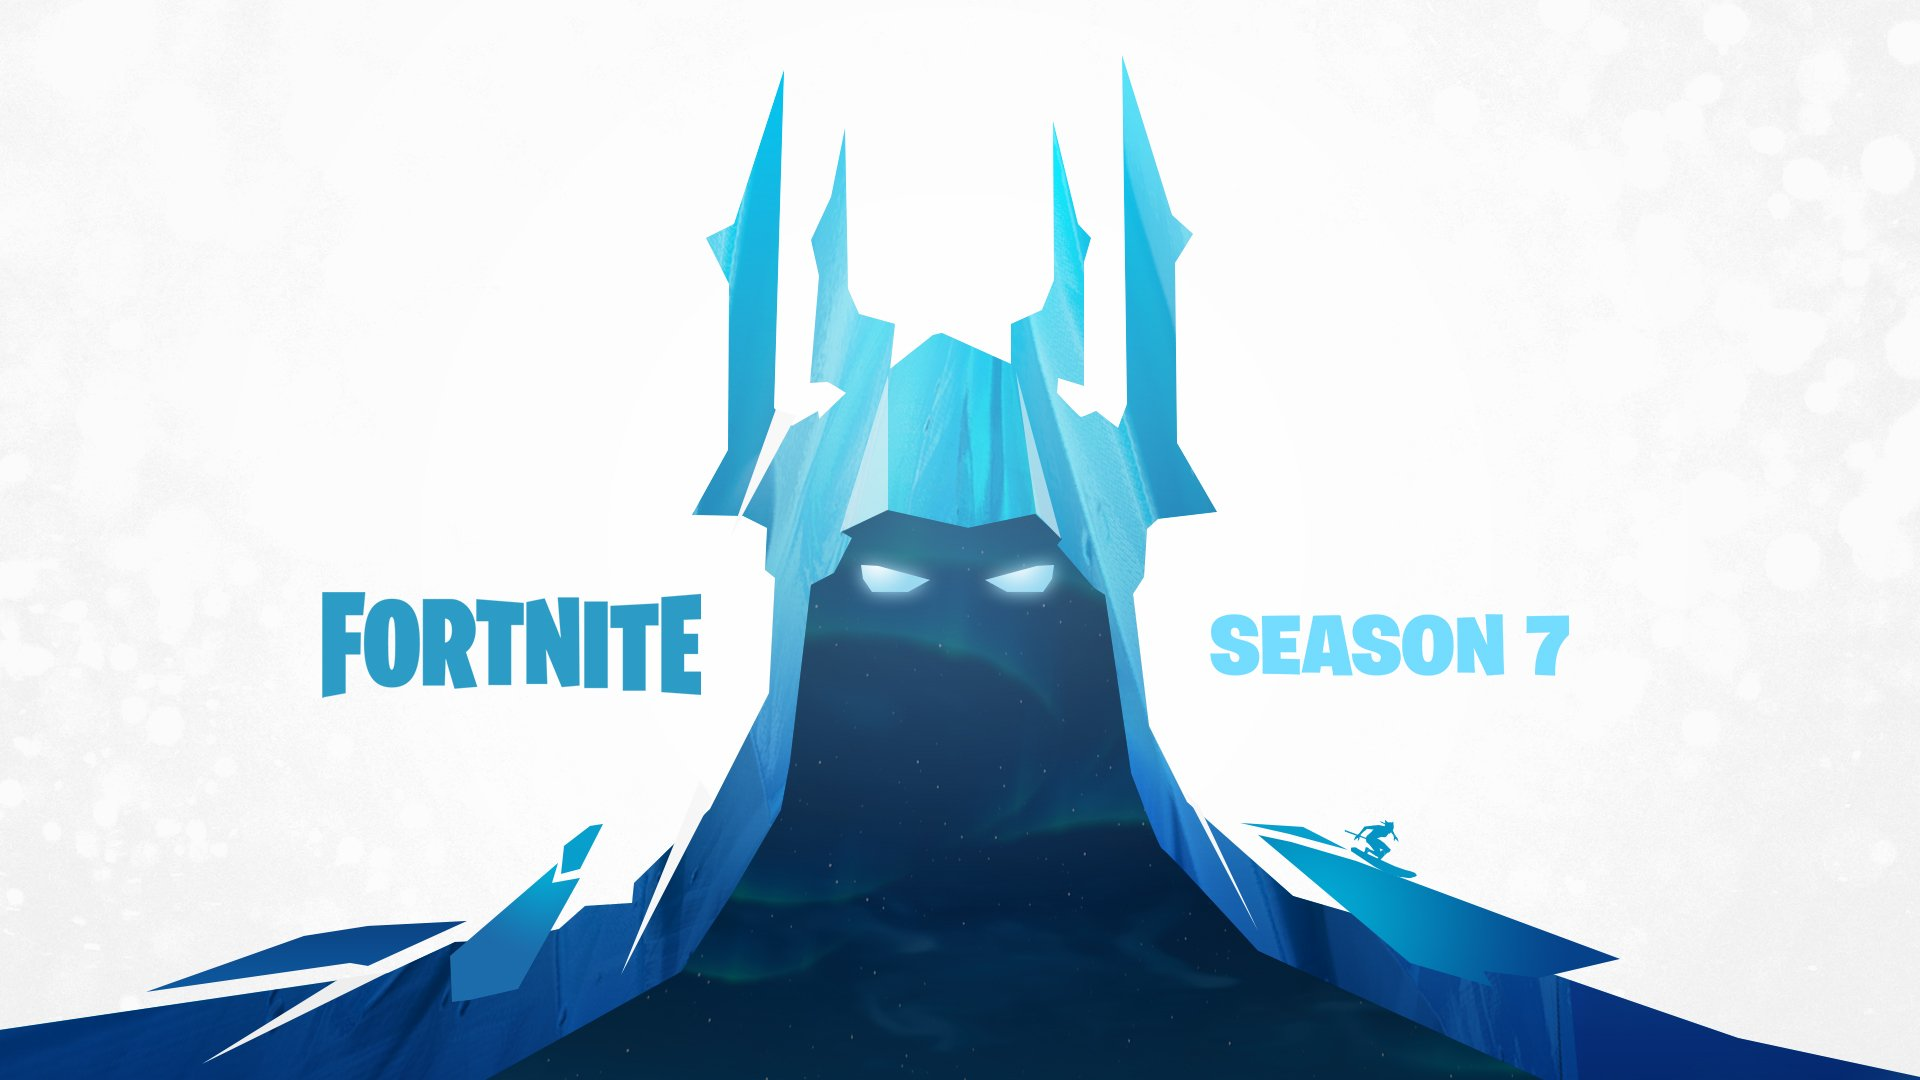 Epic Sends Out Icy Teaser For Fortnite Season 7